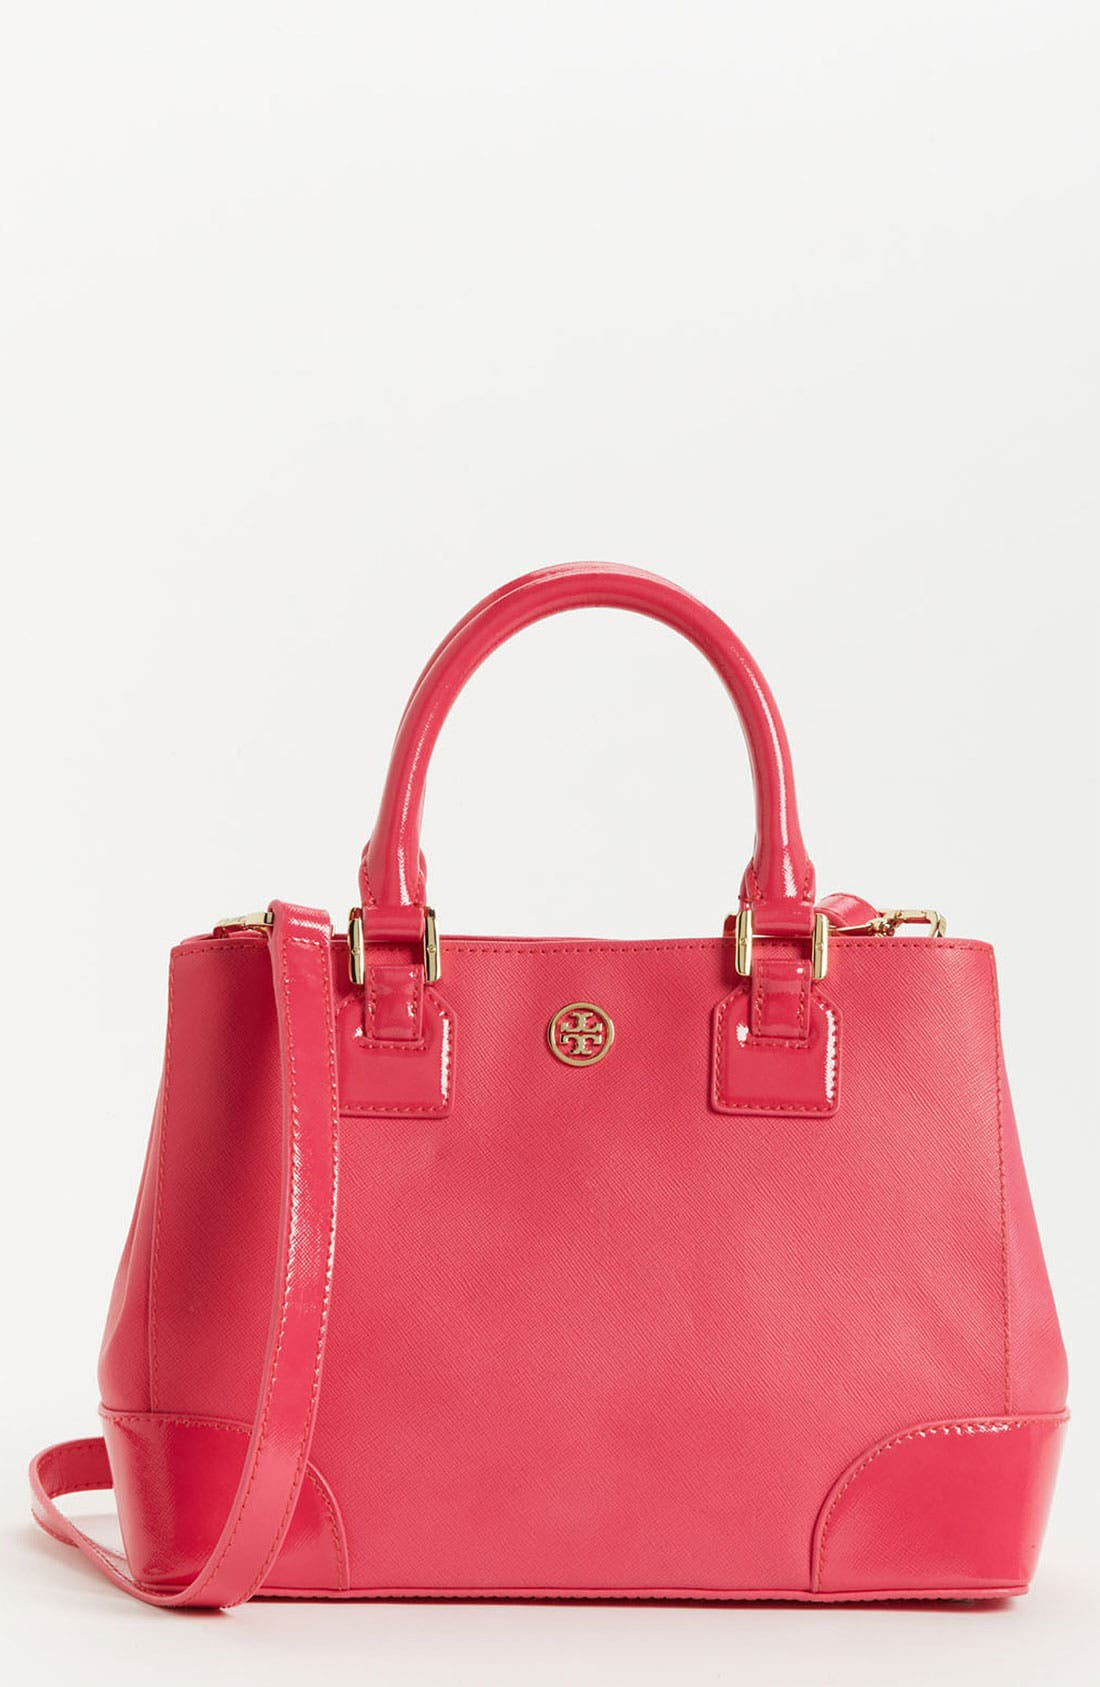 Alternate Image 1 Selected - Tory Burch 'Robinson - Mini' Leather Tote